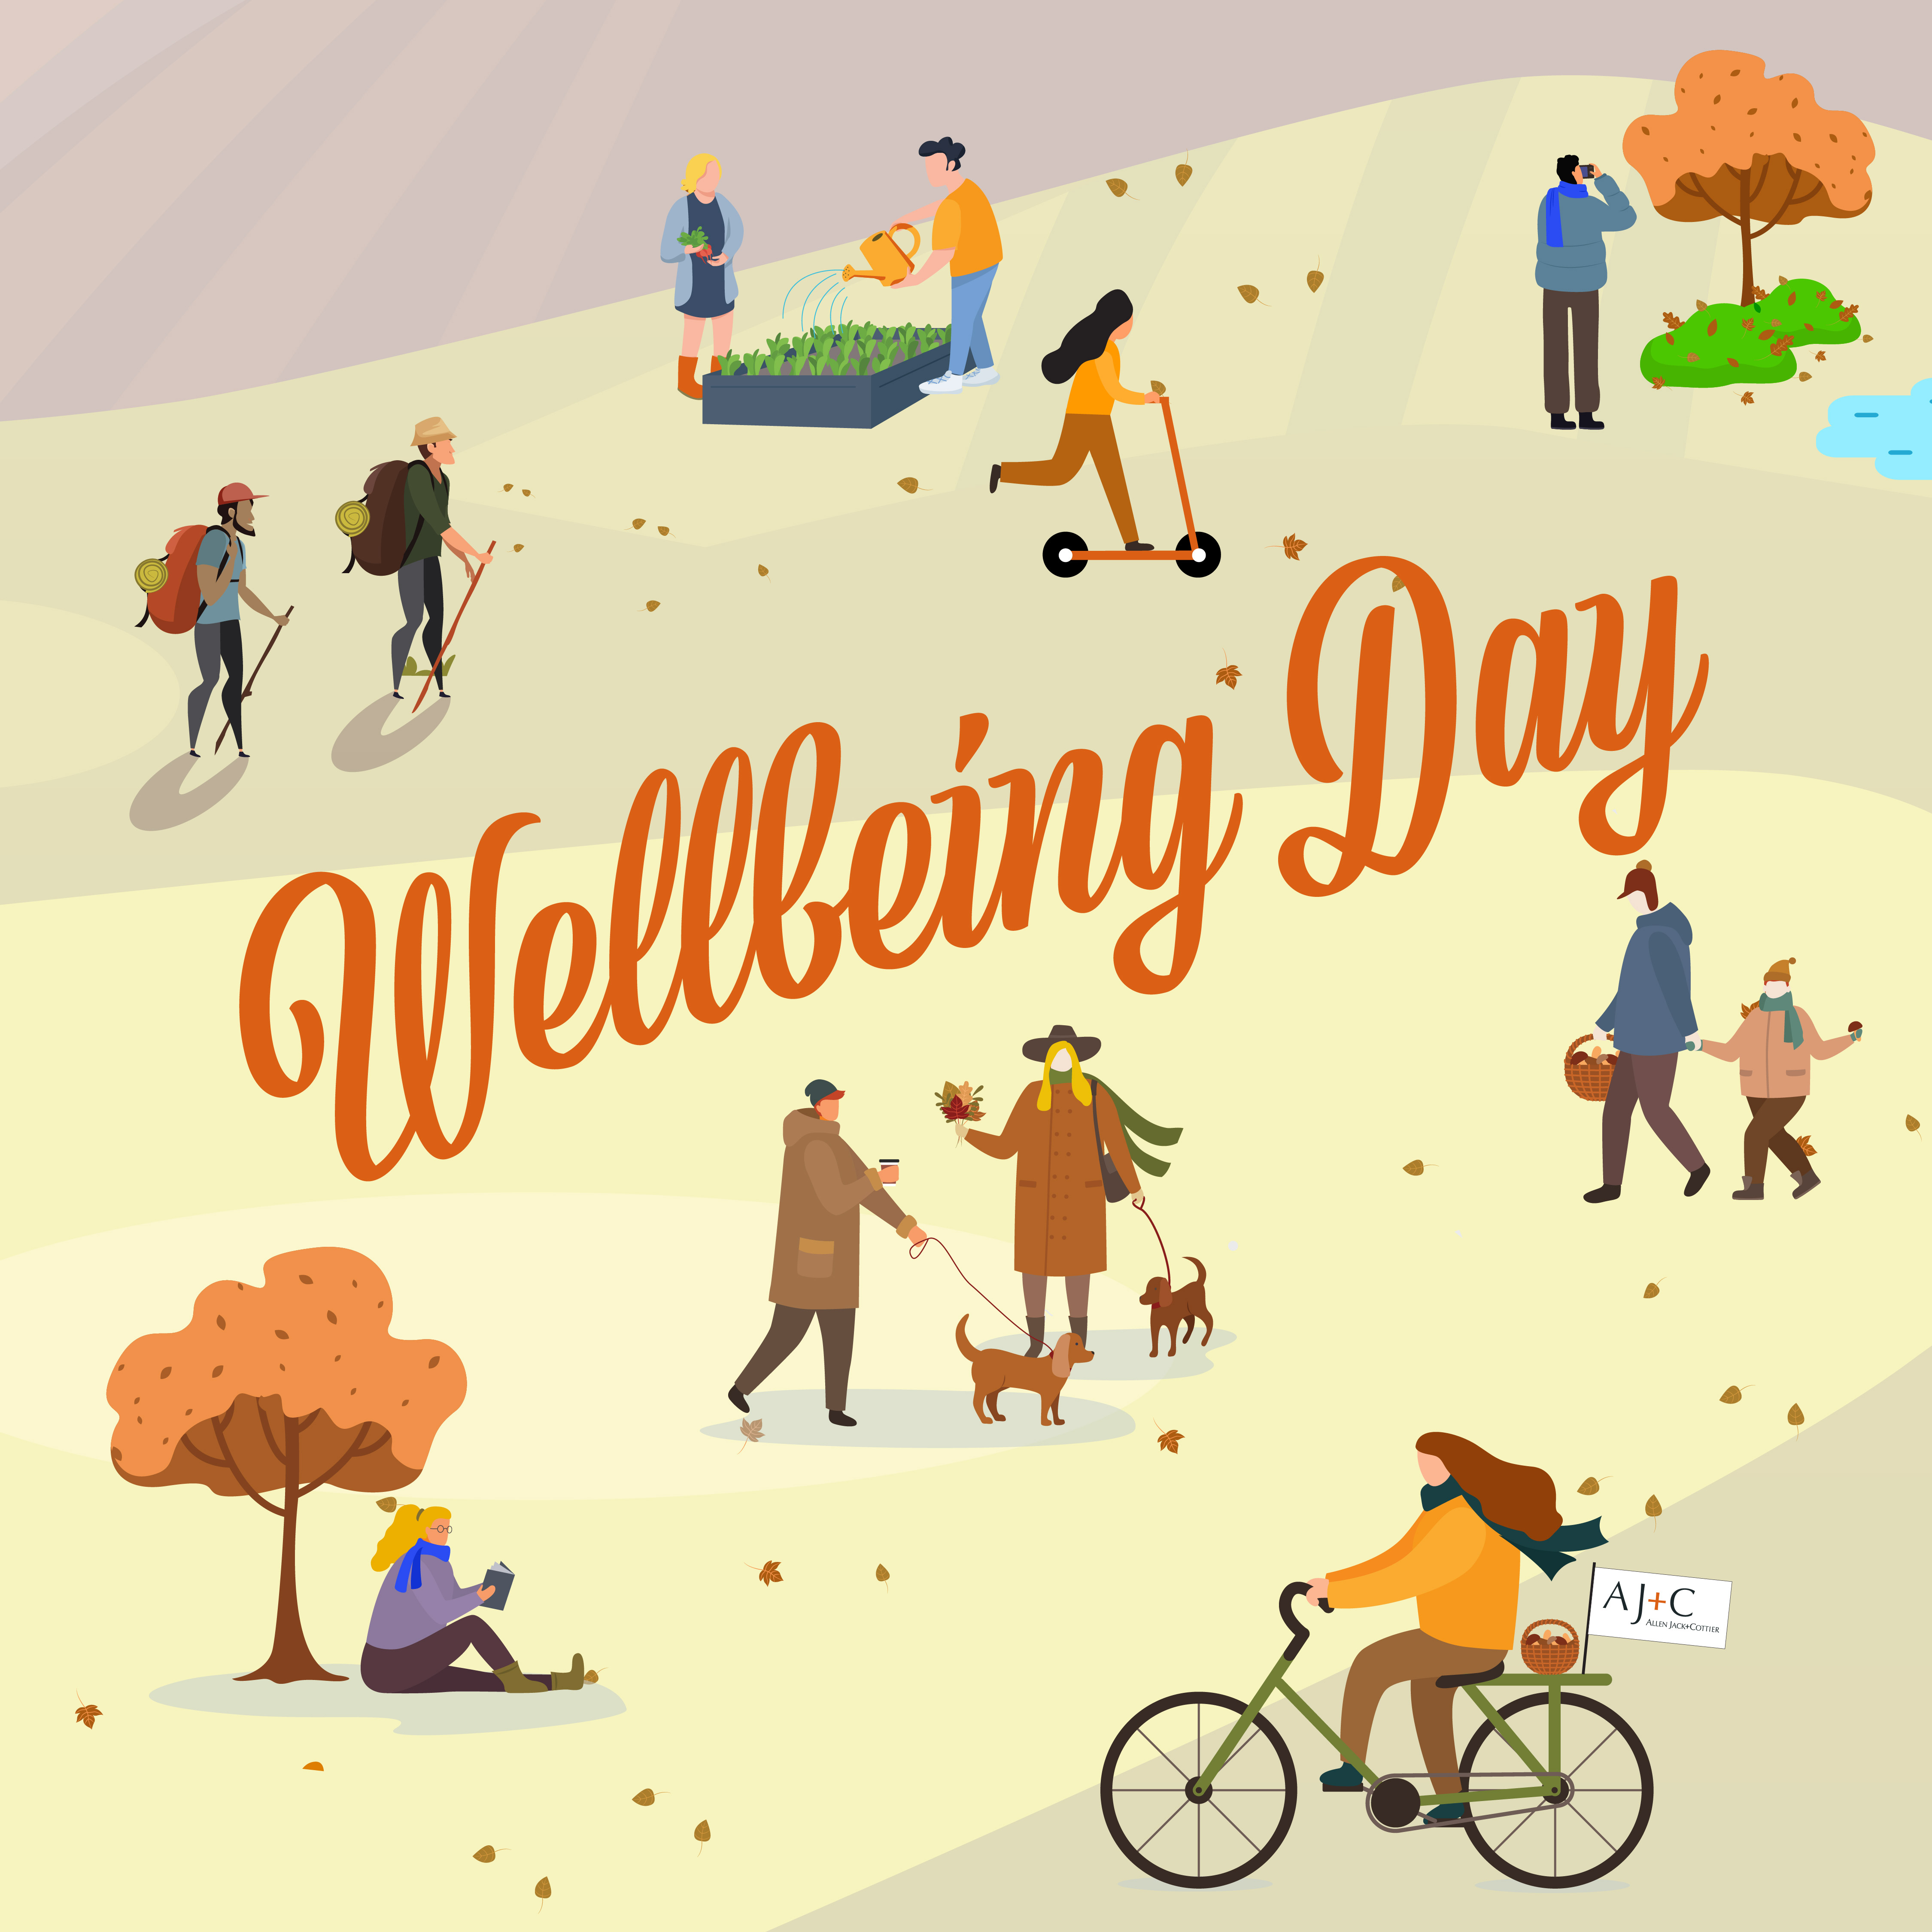 Saying 'thank you' with a wellbeing day